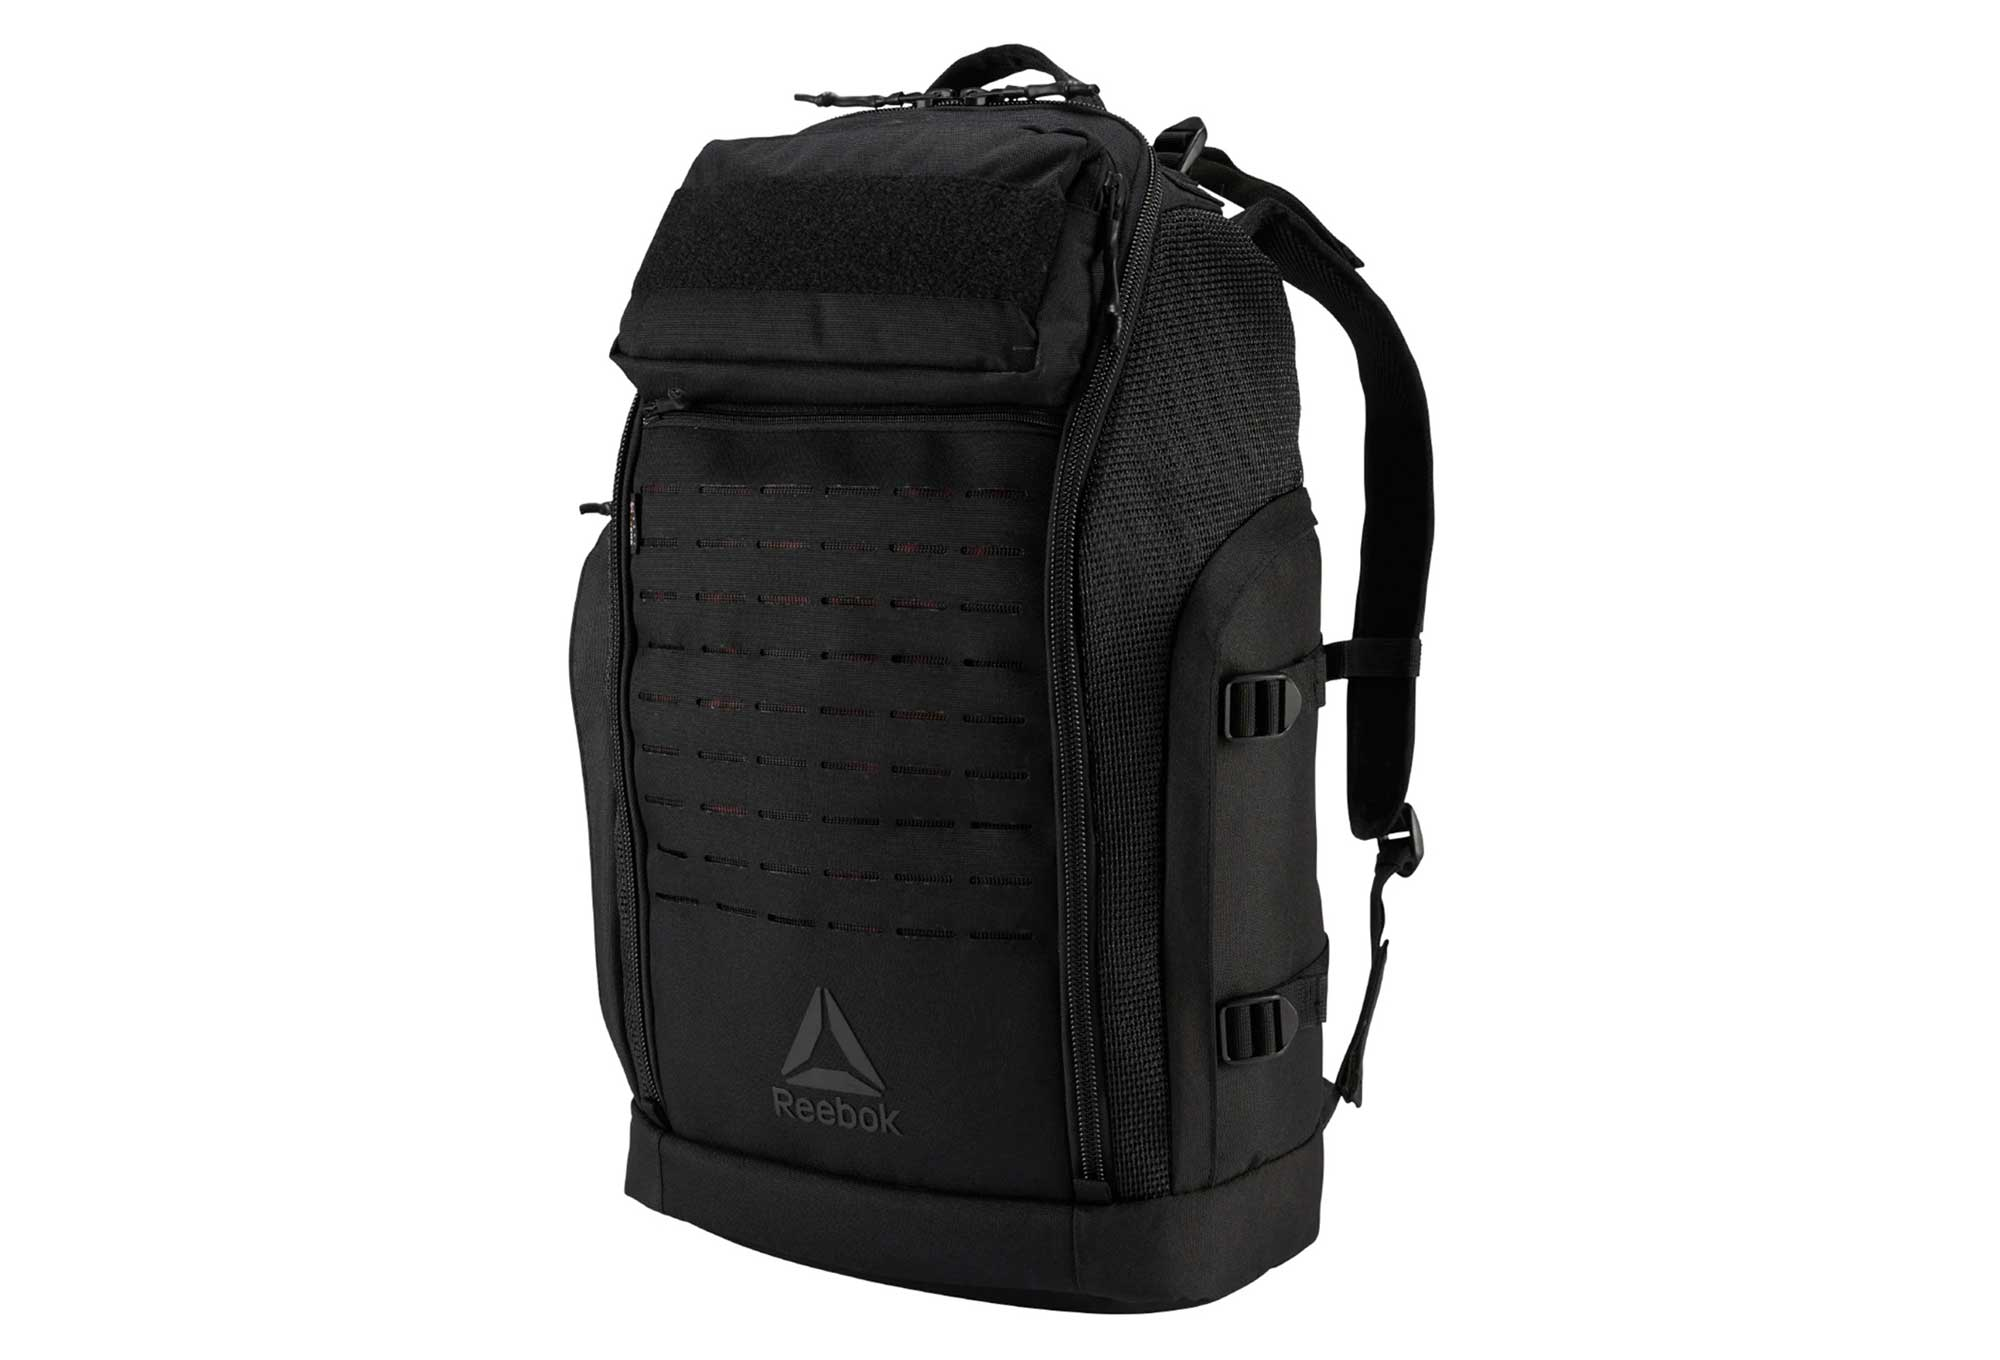 Reebok CrossFit Backpack Black